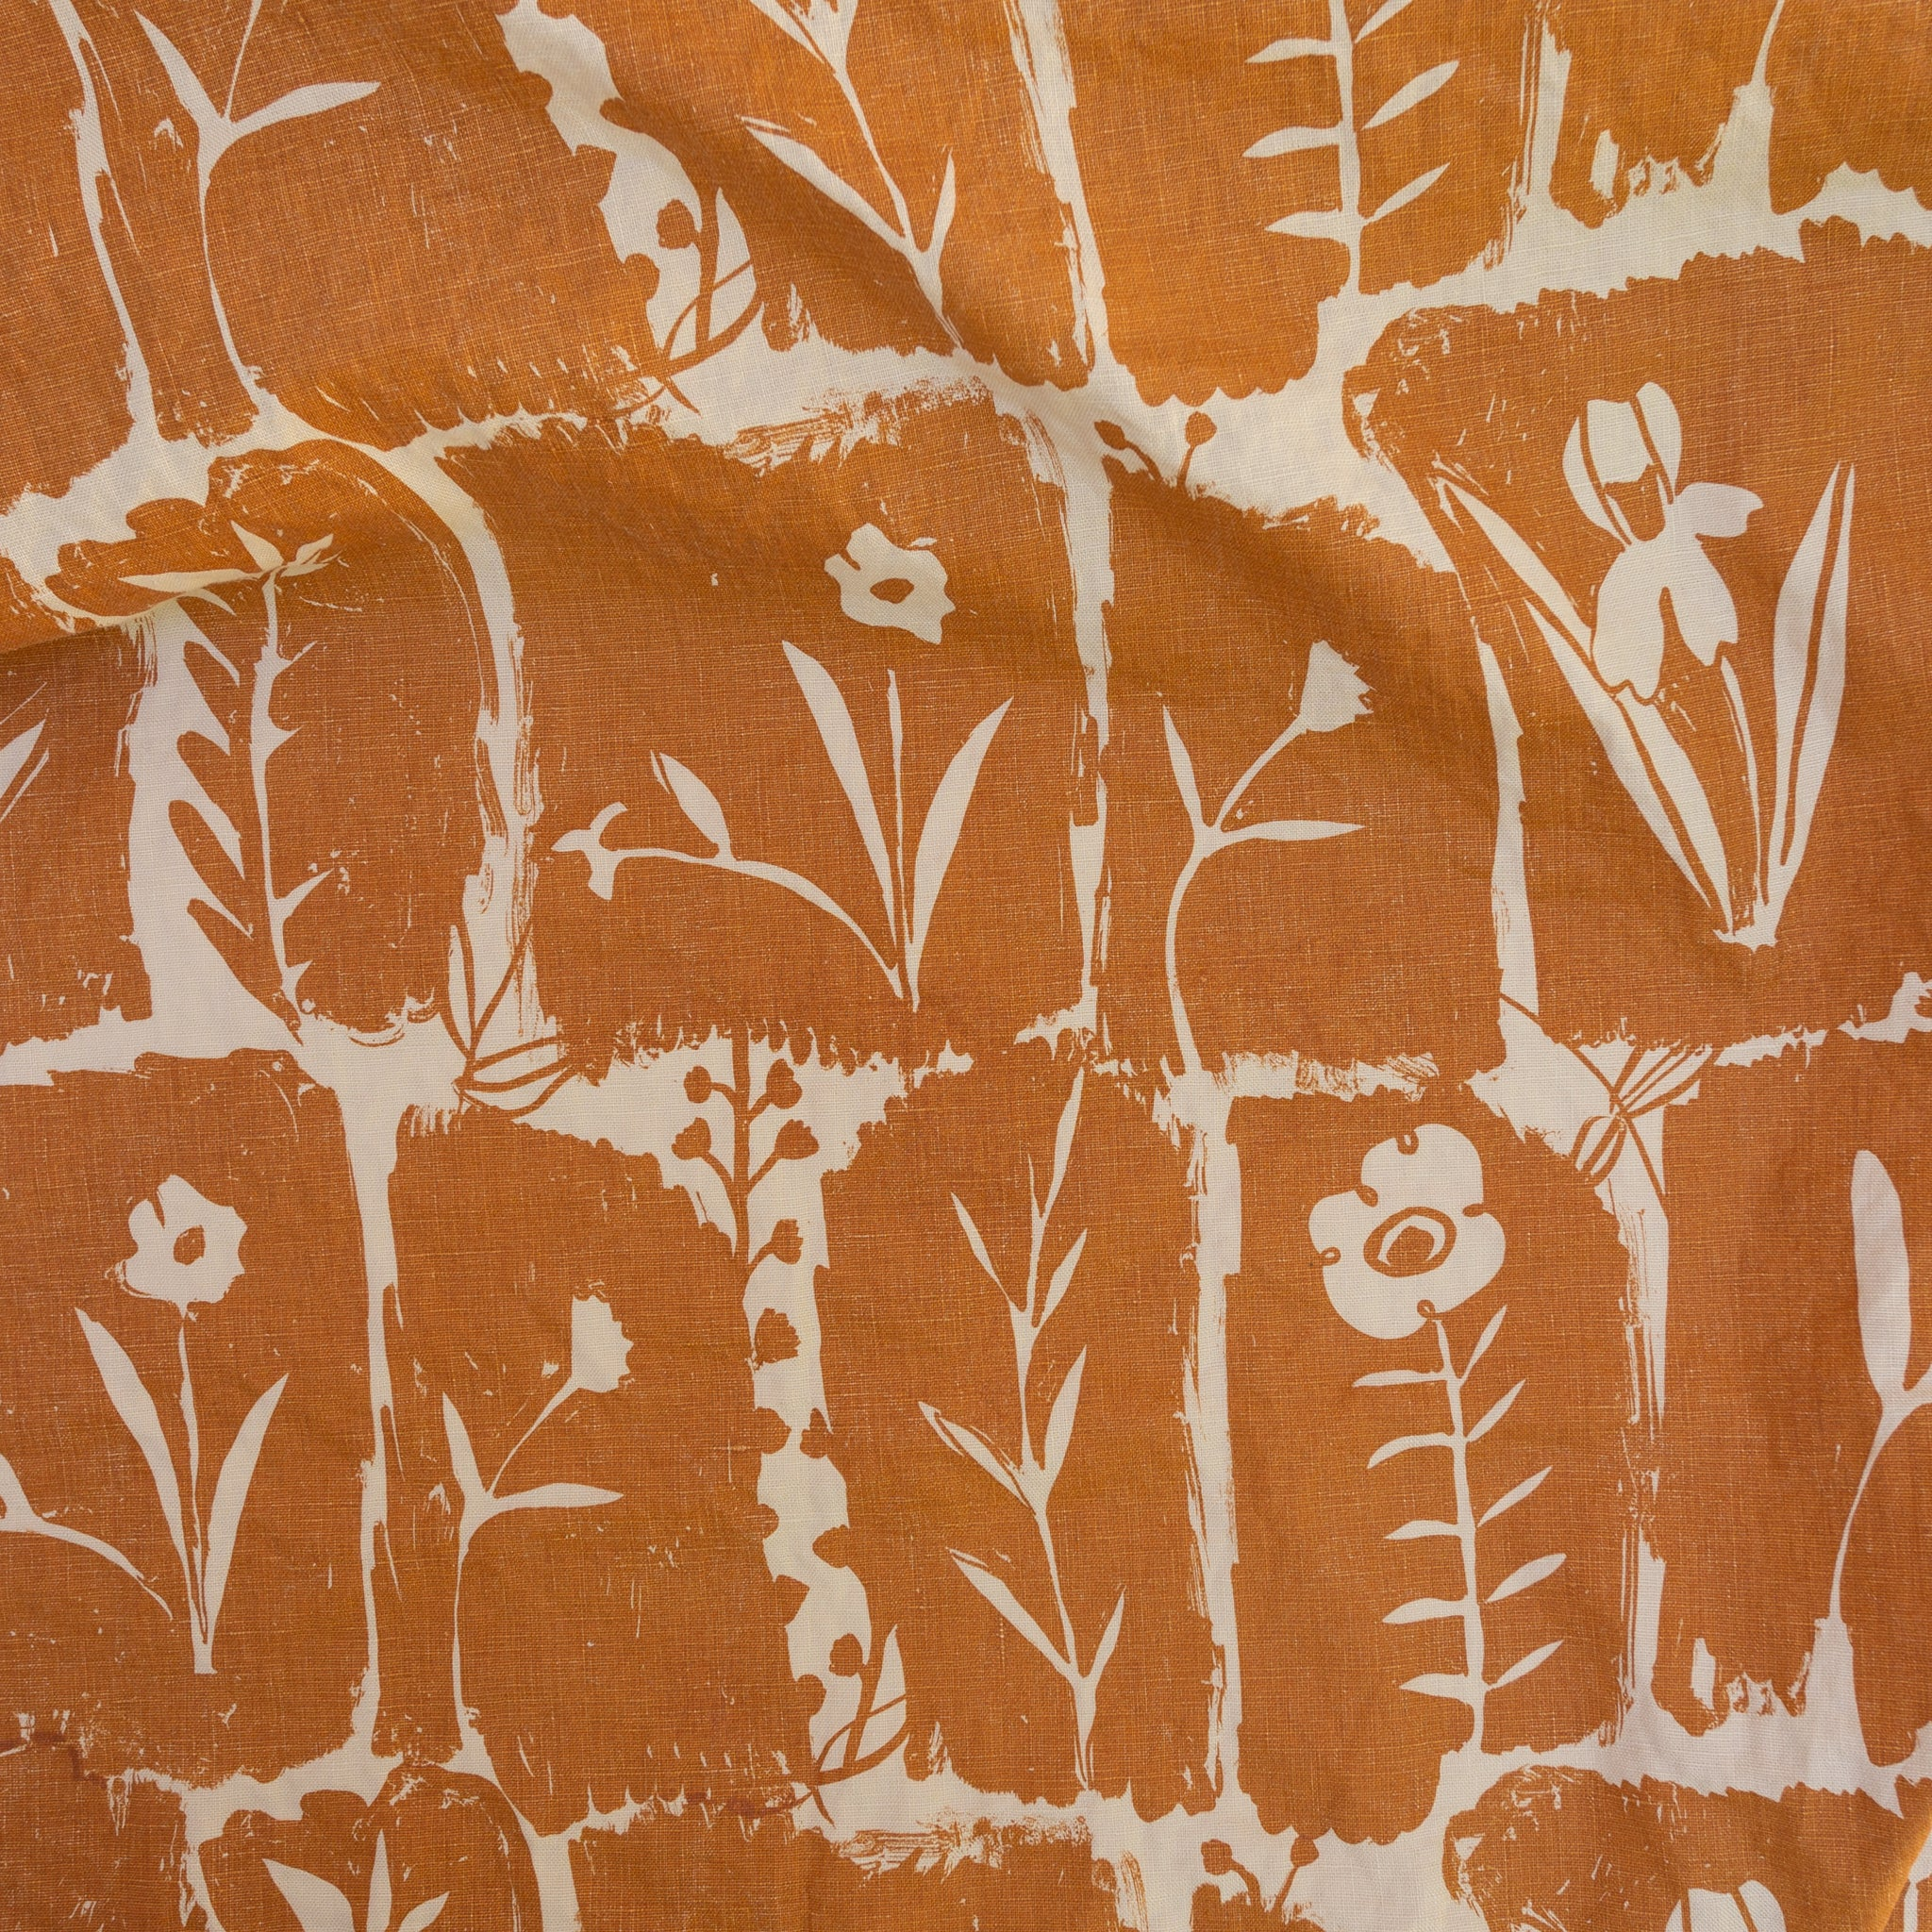 Matilda in Terracotta screen printed onto linen fabric